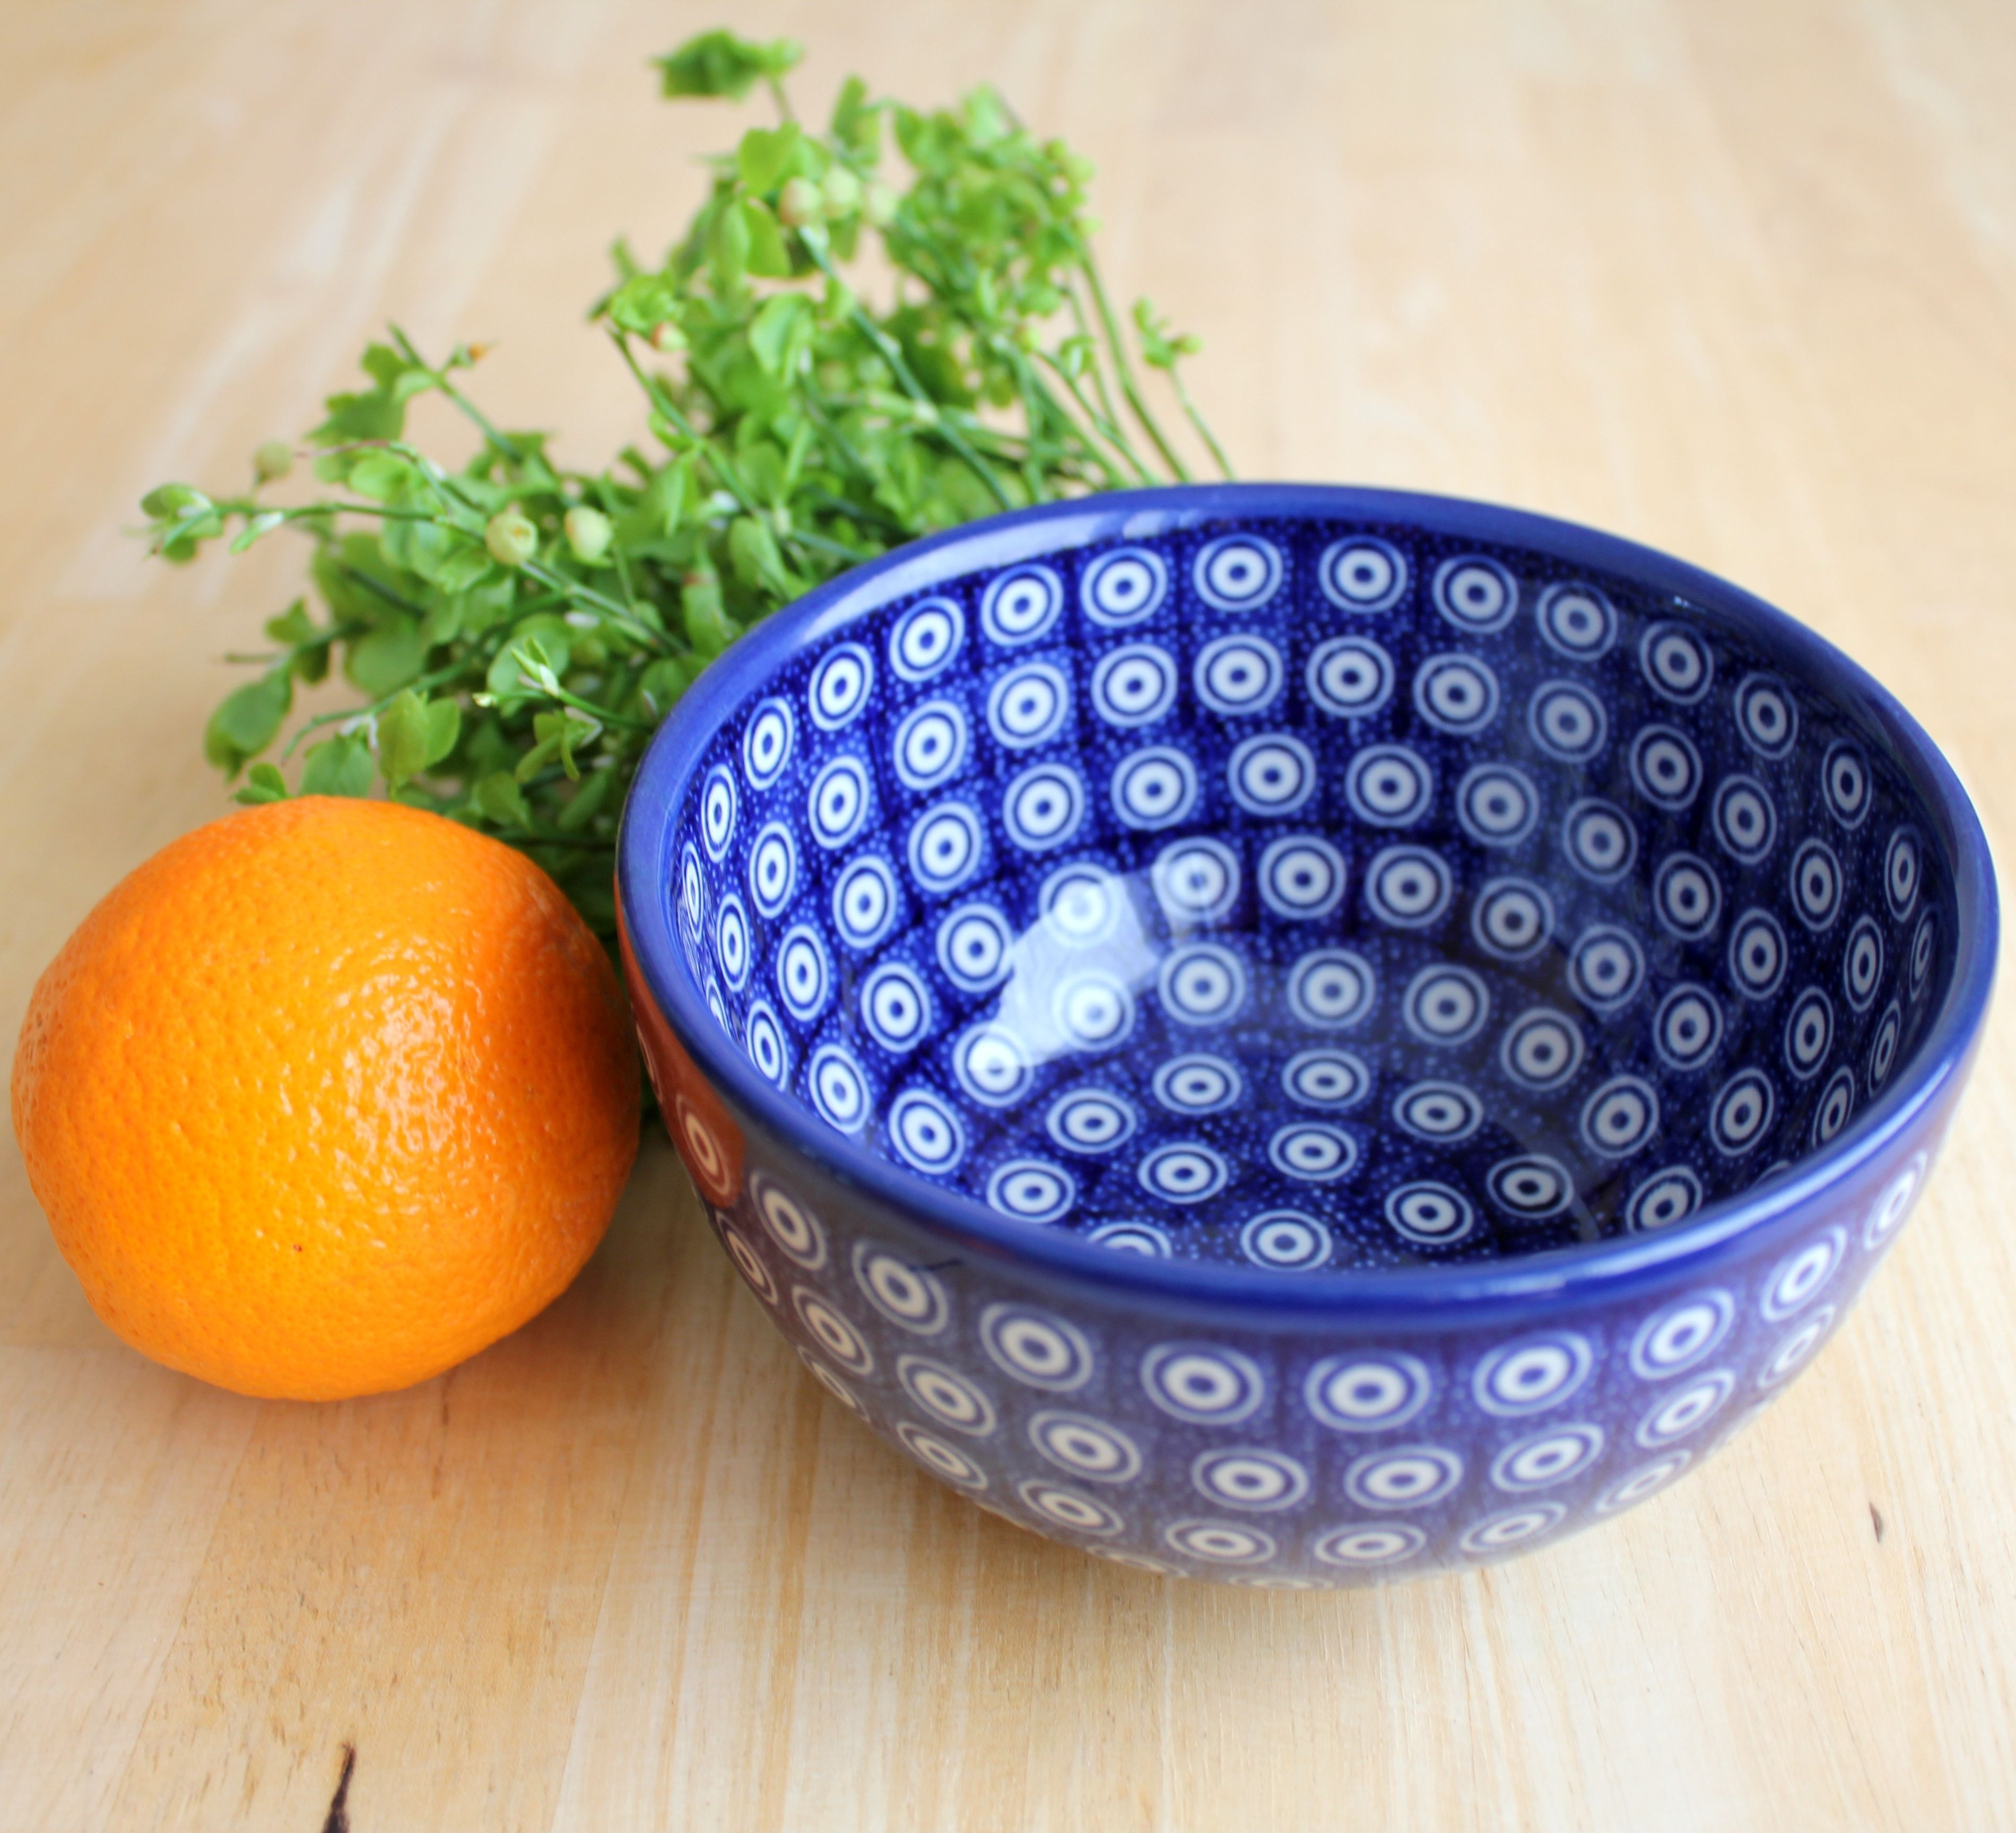 Polish pottery bowl of this shape is a must-have :)